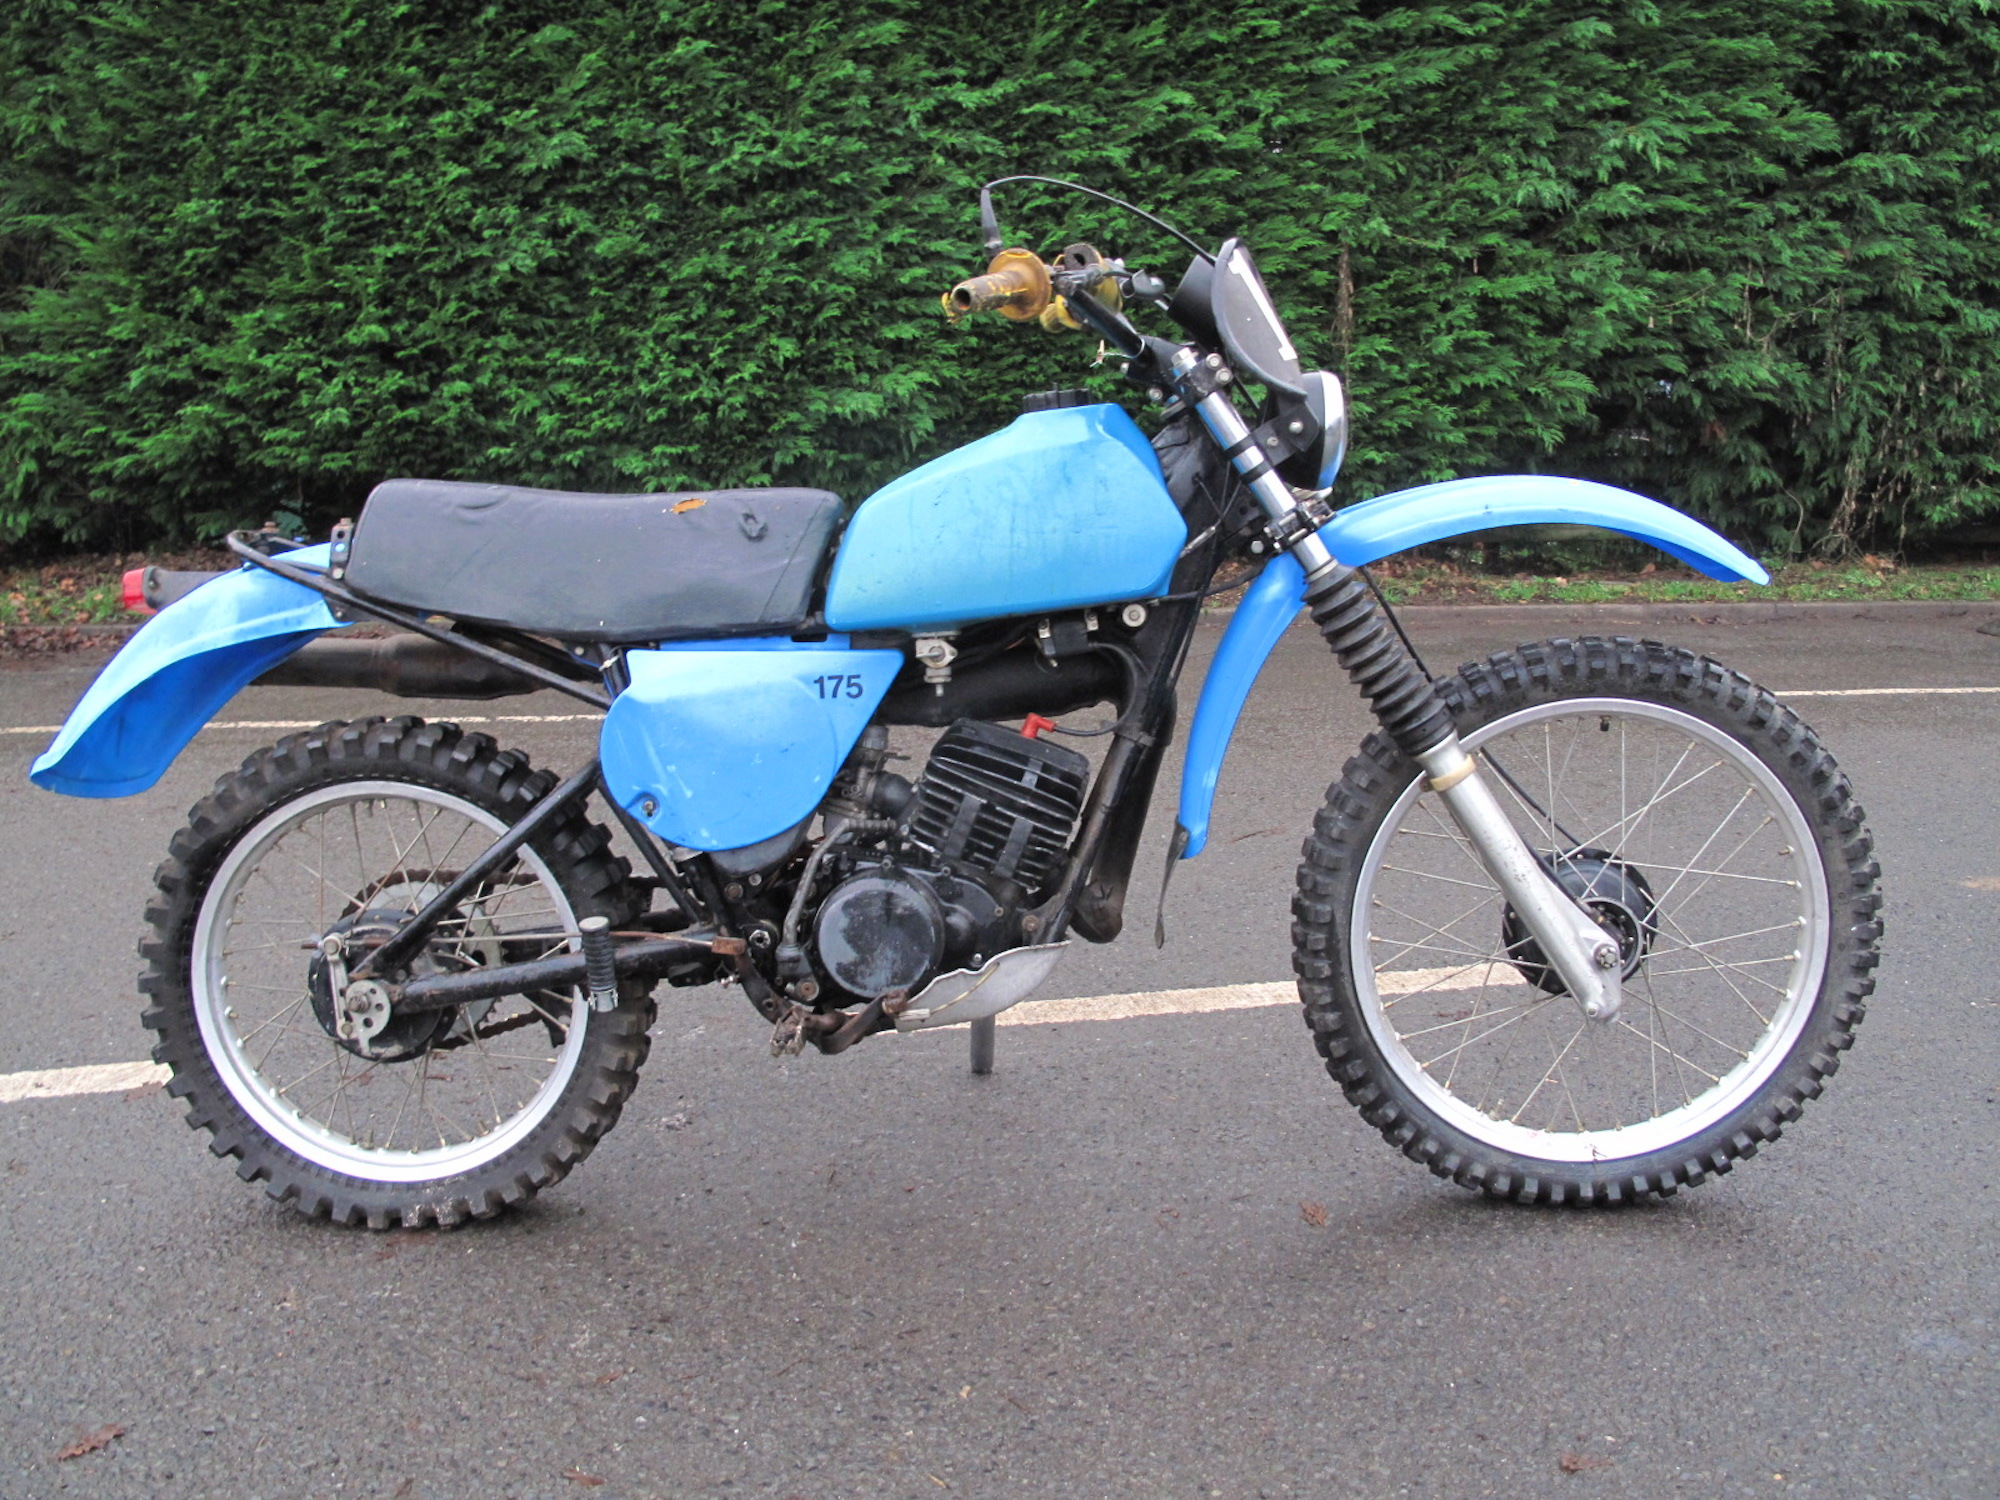 Yamaha Dt175 Dt 175 1975 And Just 1 659 Miles   U00a31100